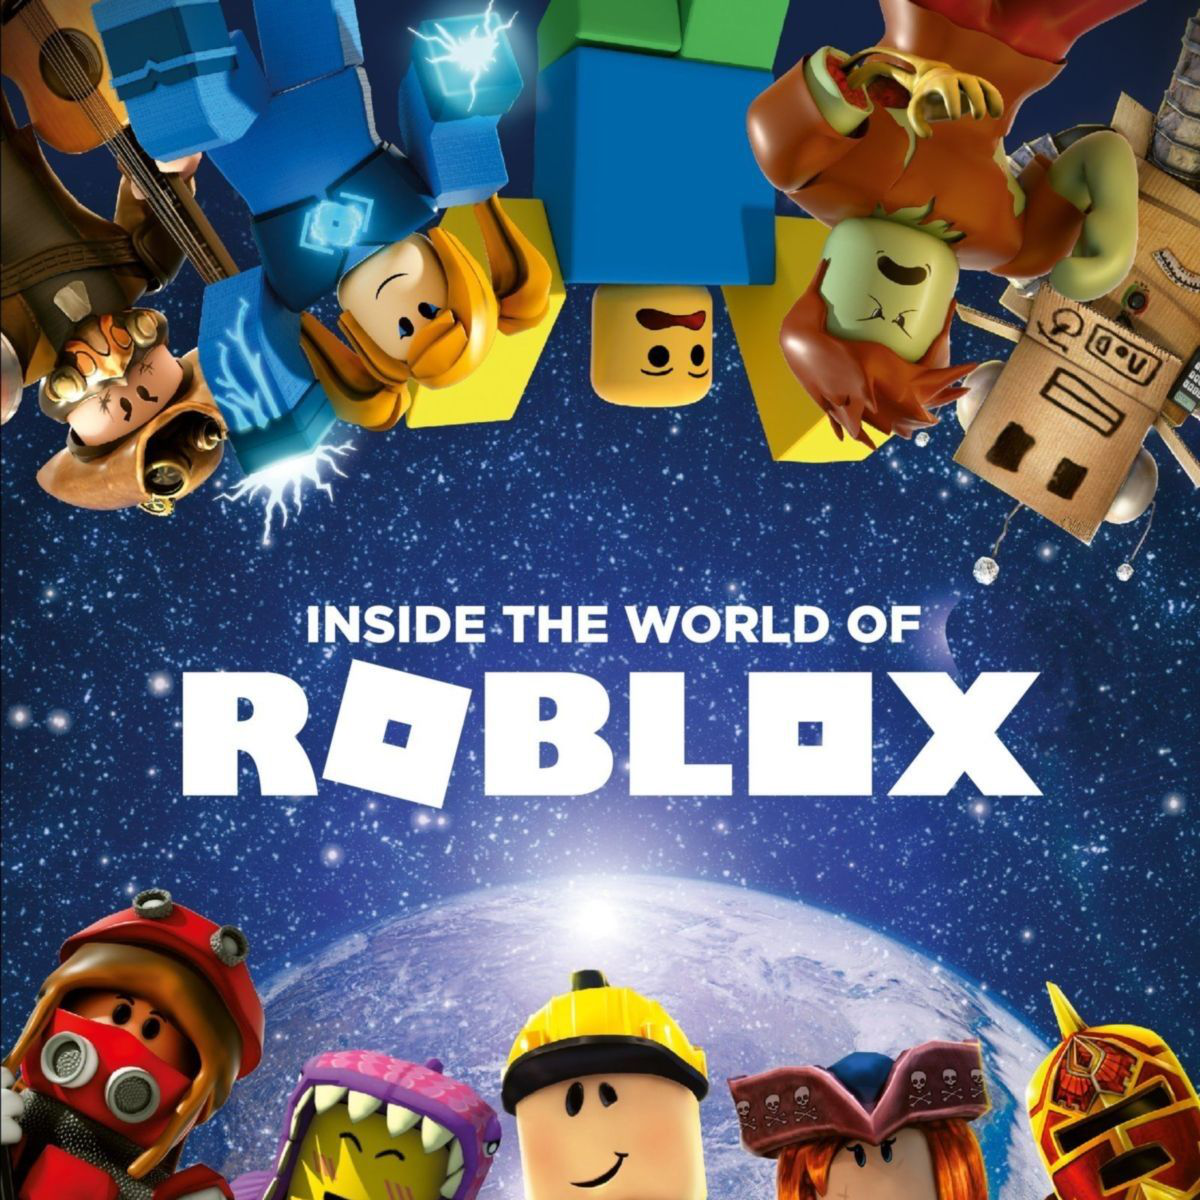 Roblox Hack Apk No Human Verification In 2020 Android Mobile Games Roblox Games